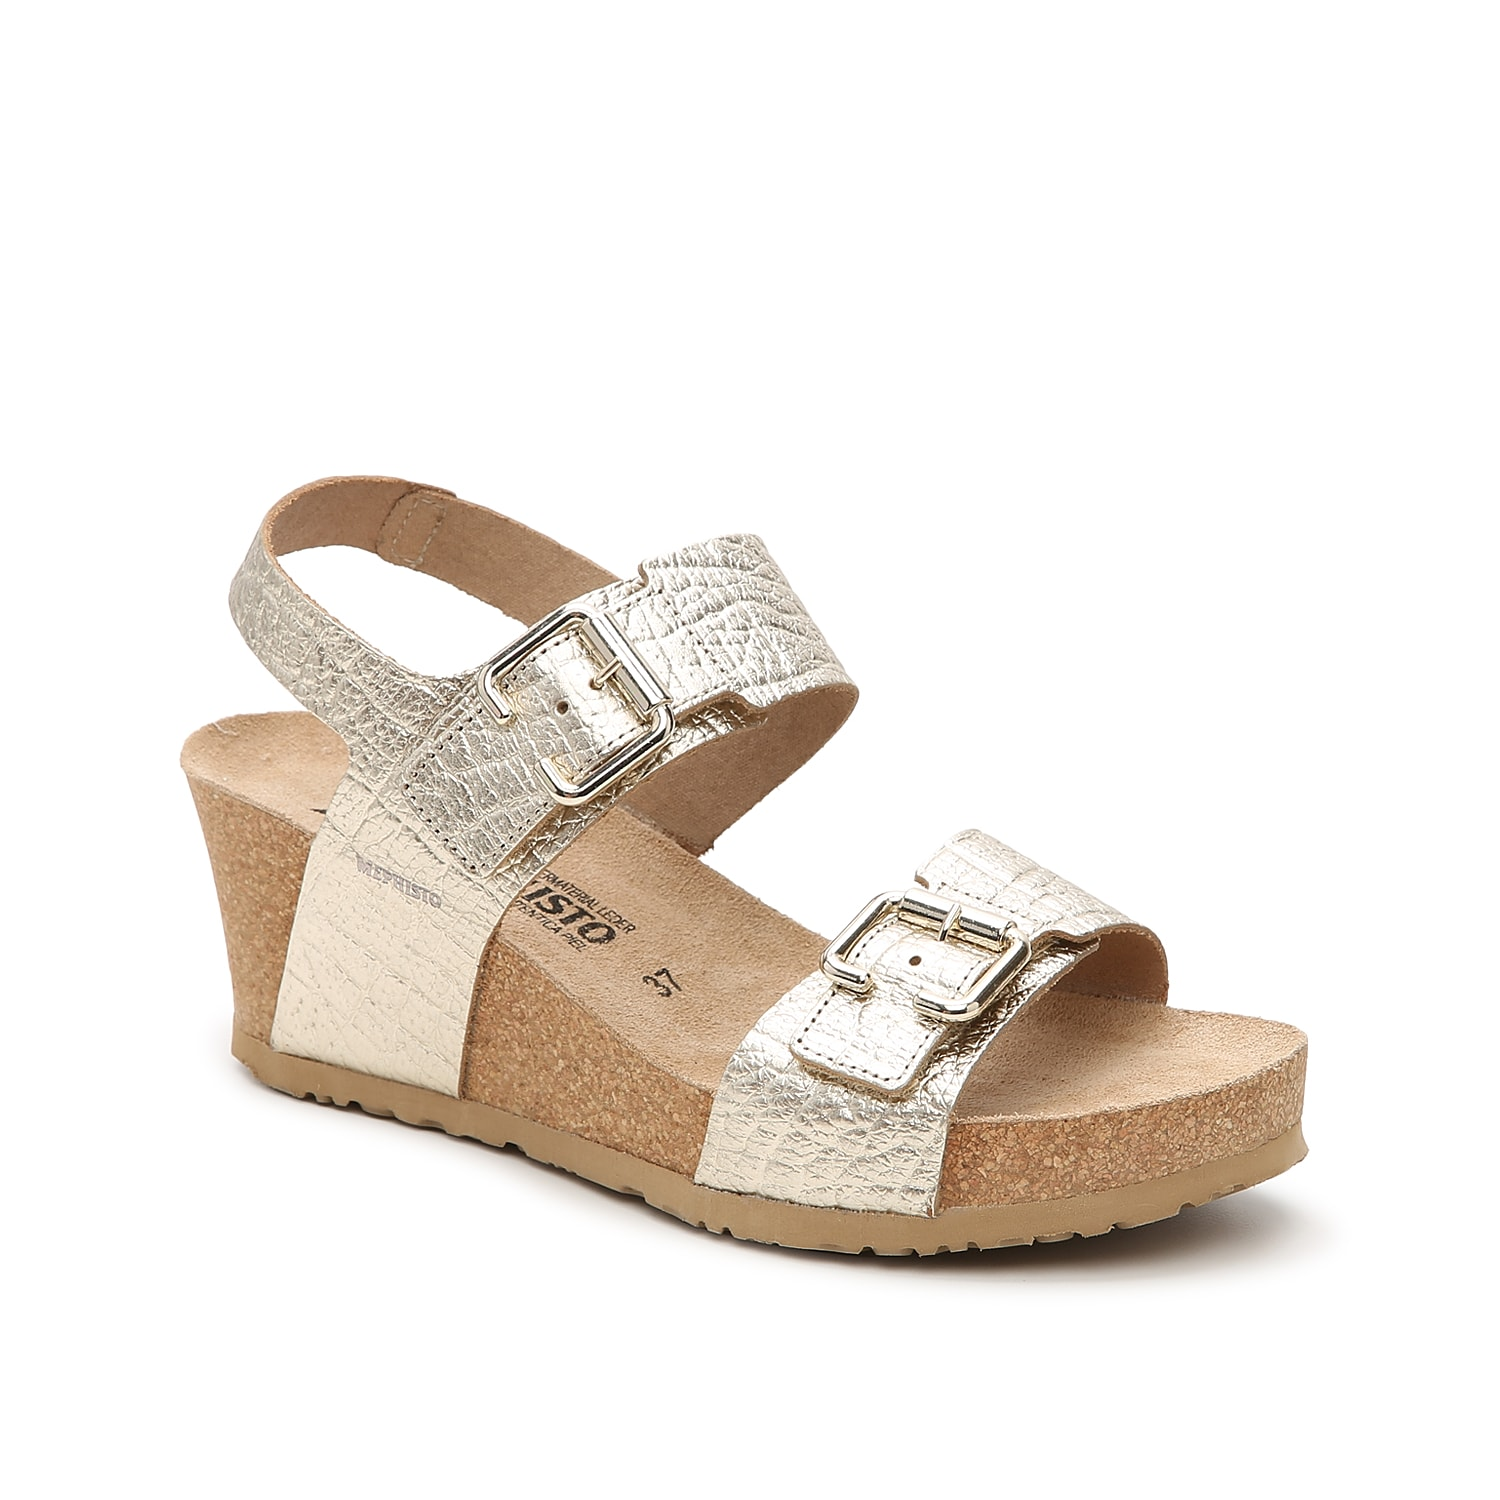 Upgrade your warm weather looks with the Lissandra wedge sandals from Mephisto. This cork pair is fashioned with dual adjustable buckles for a fully custom fit and a suede-covered footbed that conforms to your foot.